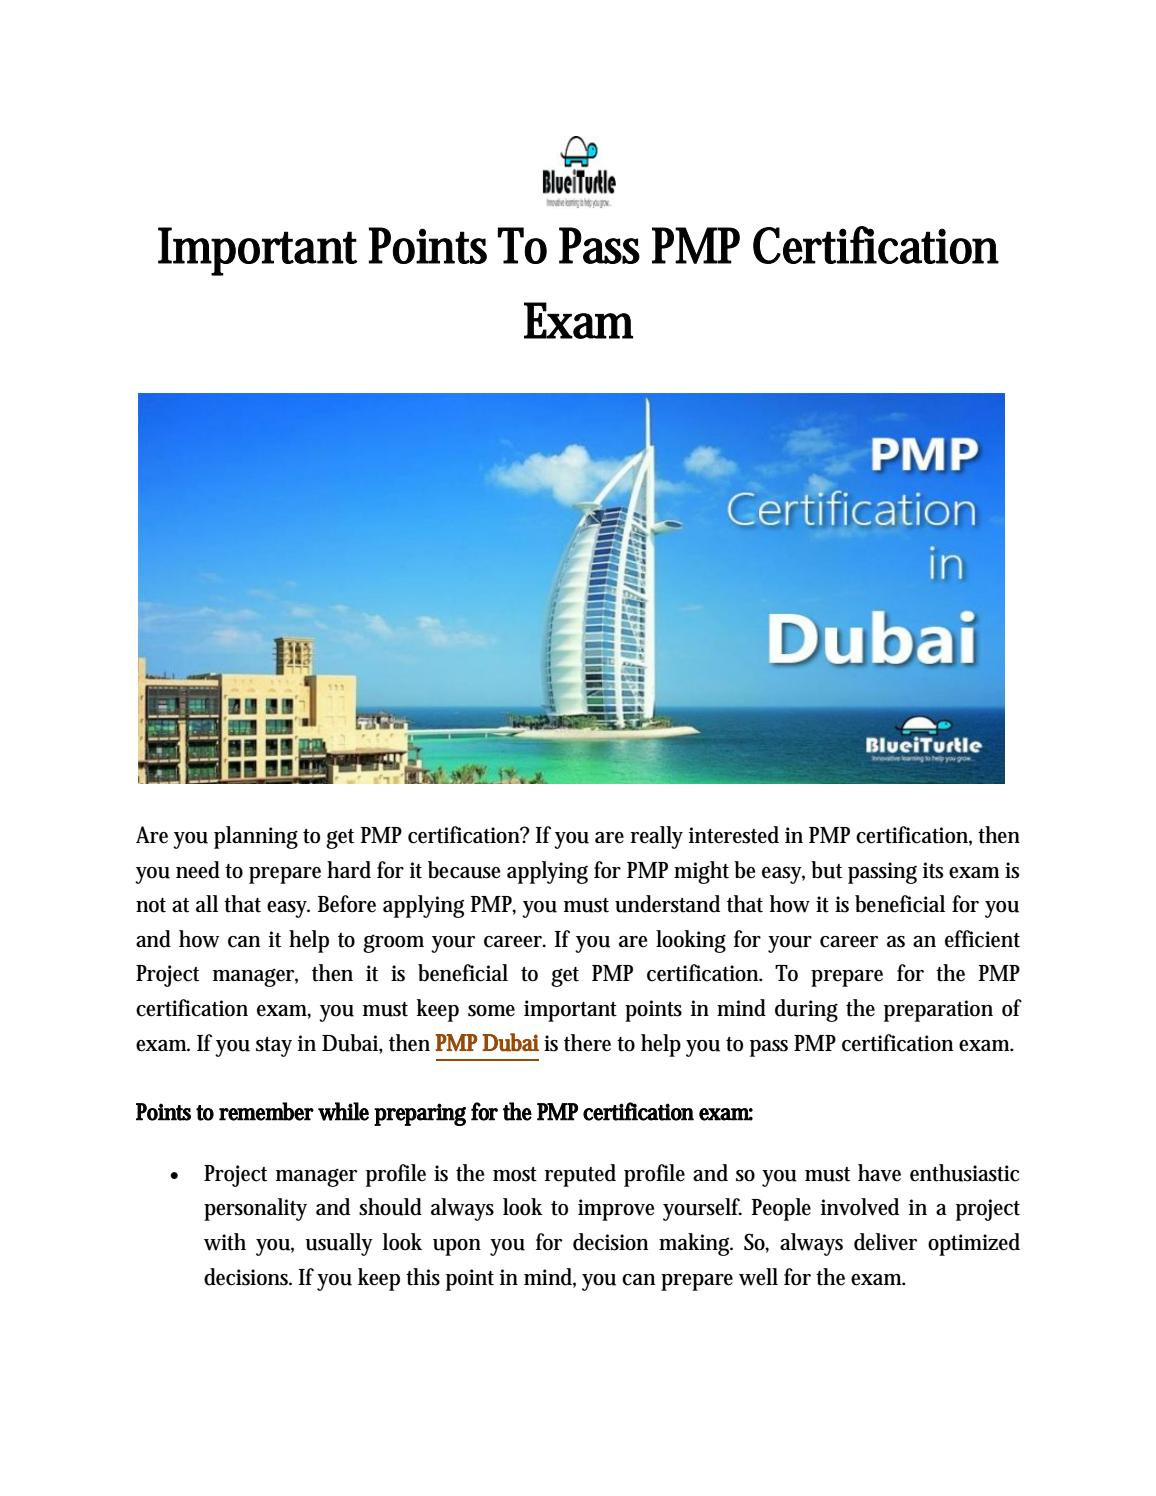 Blueiturtle Important Points To Pass Pmp Certification Exam By